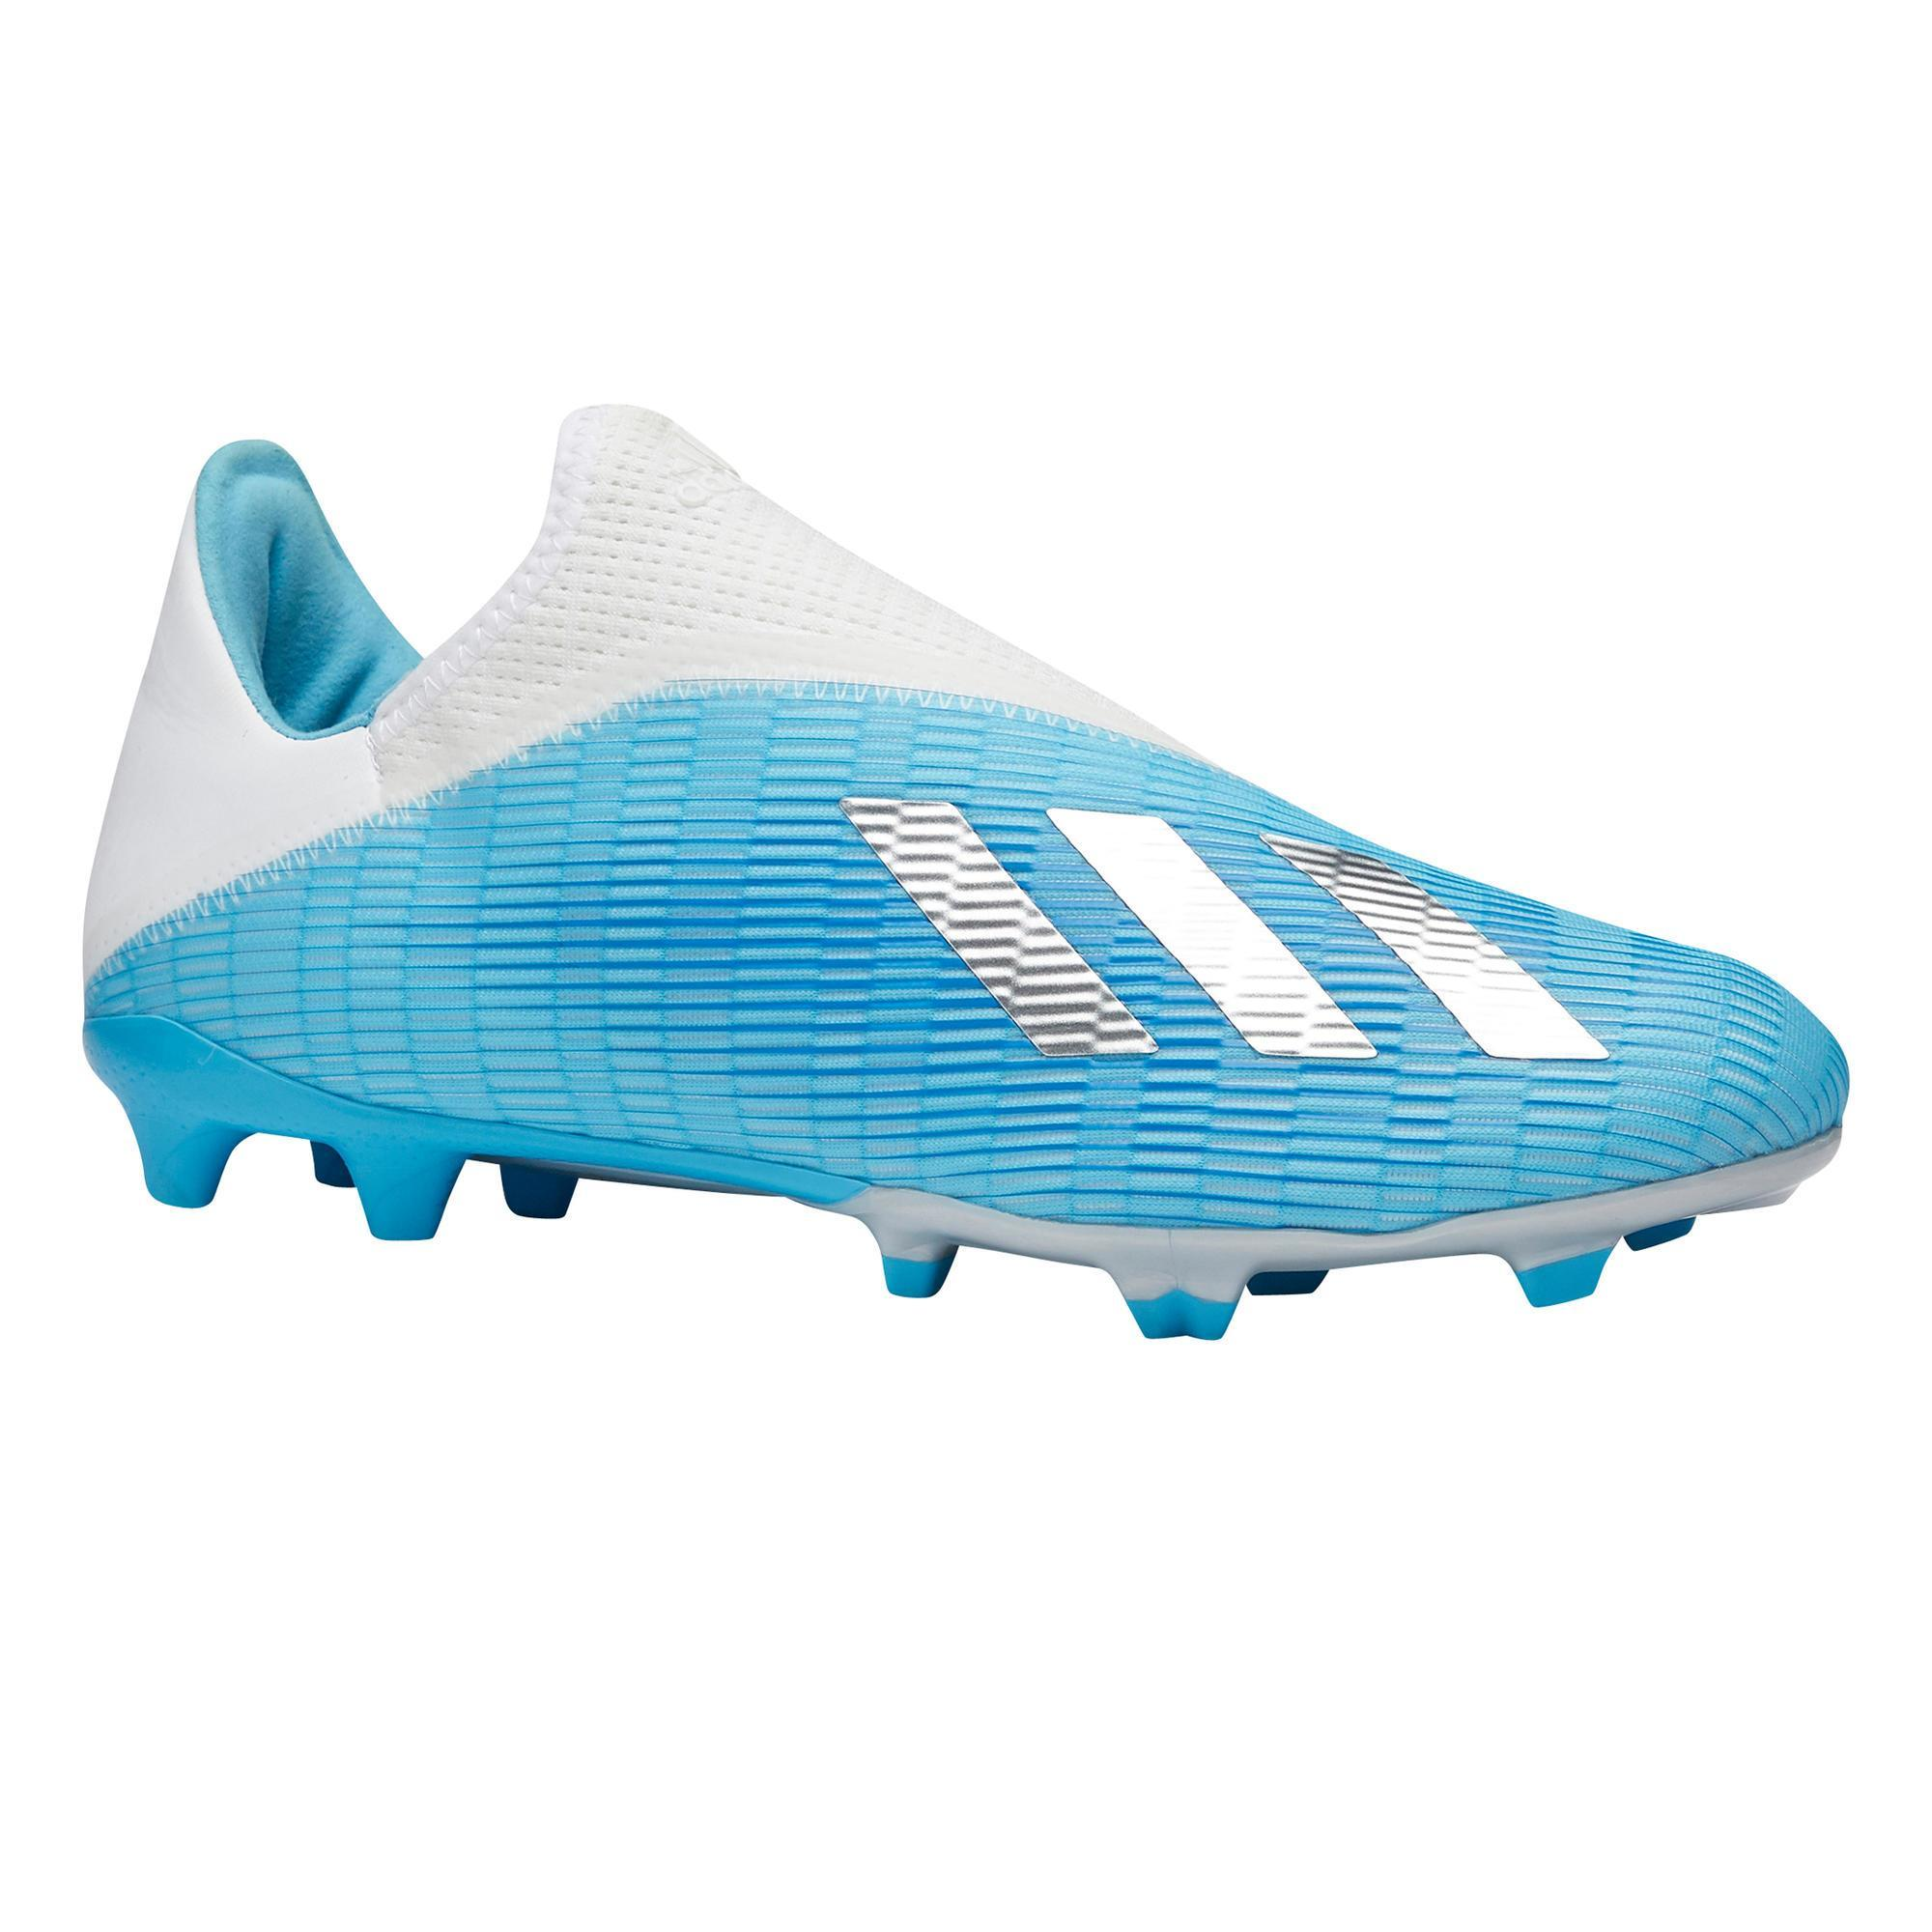 good selling closer at uk store Chaussures de football enfant | Decathlon